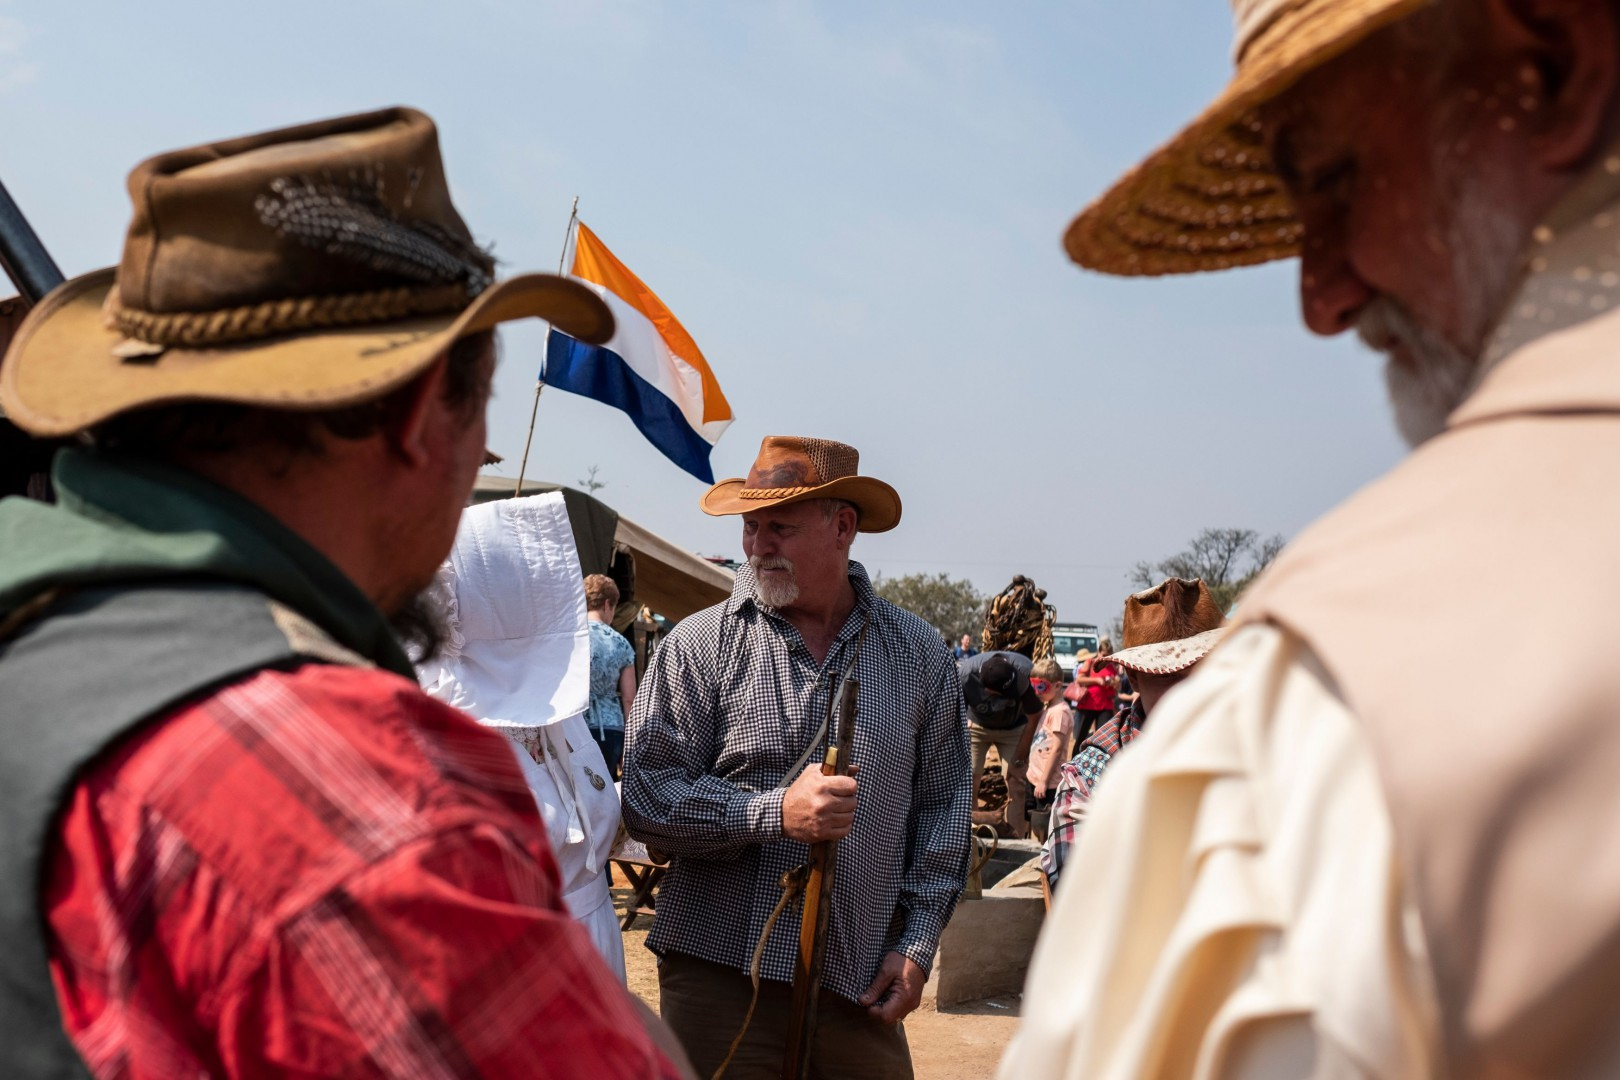 A man dressed in traditional Voortrekker (Boer who took part in the Great Trek migration from the Cape colony towards east and north in the 1830') attire, holds a Flintlock gun at the Voortrekker Monument on Heritage Day on September 24, 2018. - People of Afrikaner descent gathered at the Voortrekker Monument in Pretoria on September 24, 2018 to celebrate Heritage day. (Photo by WIKUS DE WET / AFP)